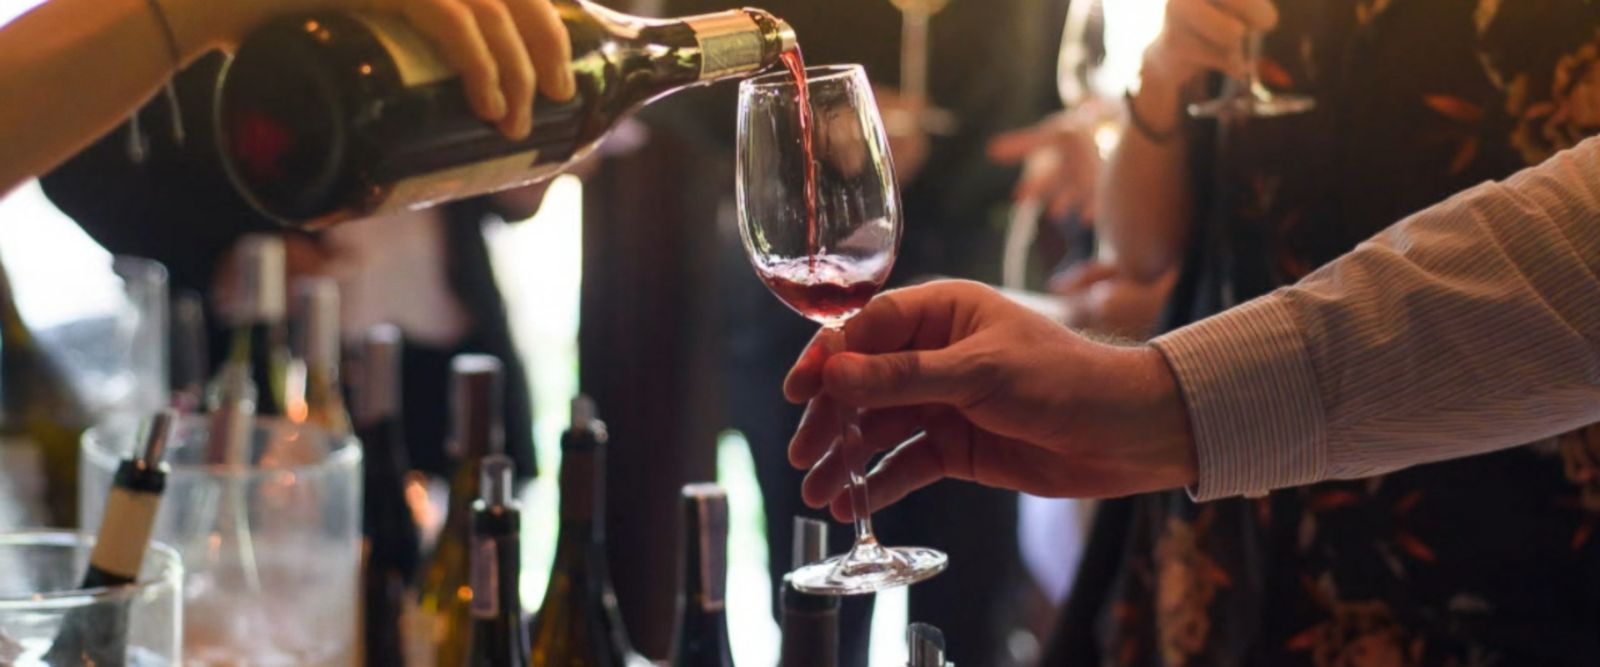 """A new study published in """"Plos Medicine"""" shows the risk of cancer is lowest in light drinkers, while heavy drinkers are at the greatest risk."""